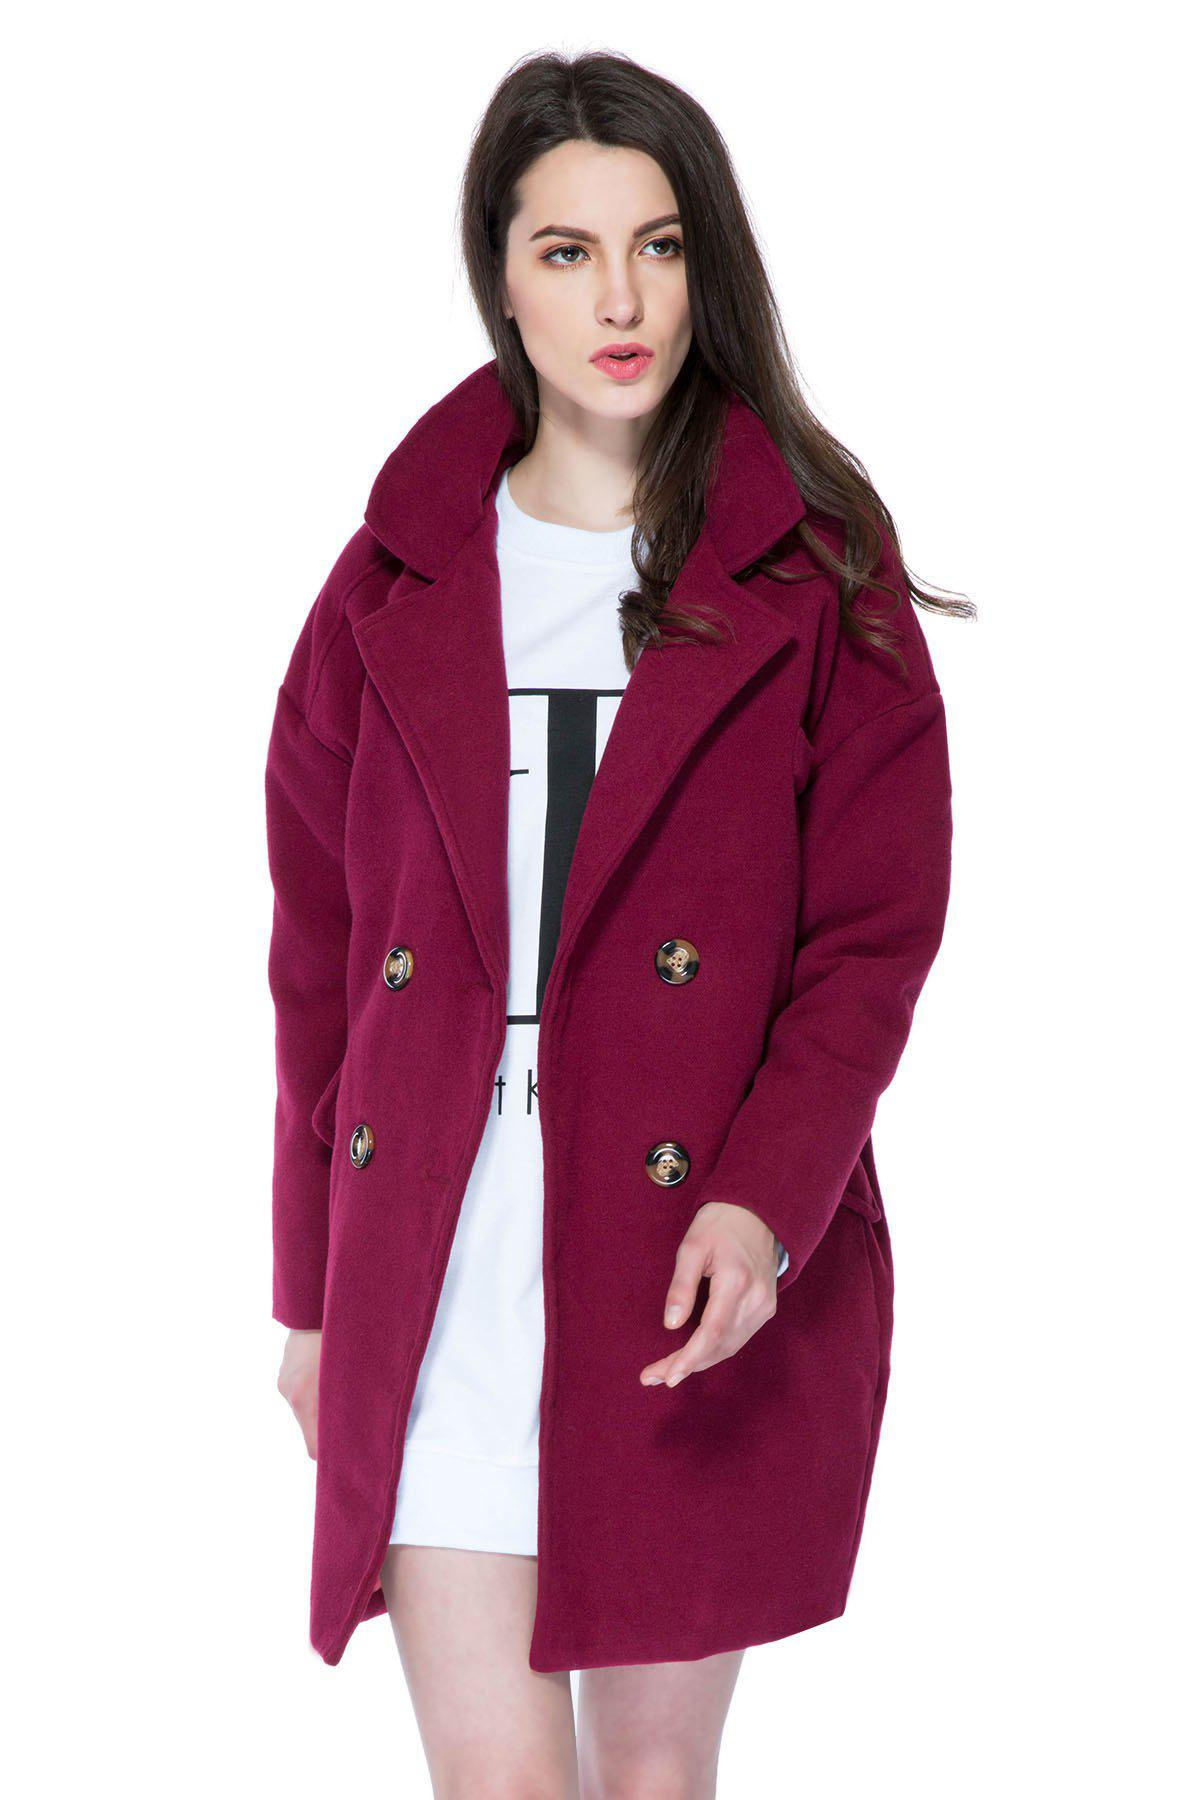 Shop Stylish Lapel Neck Long Sleeve Solid Color Double-Breasted Loose-Fitting Women's Coat